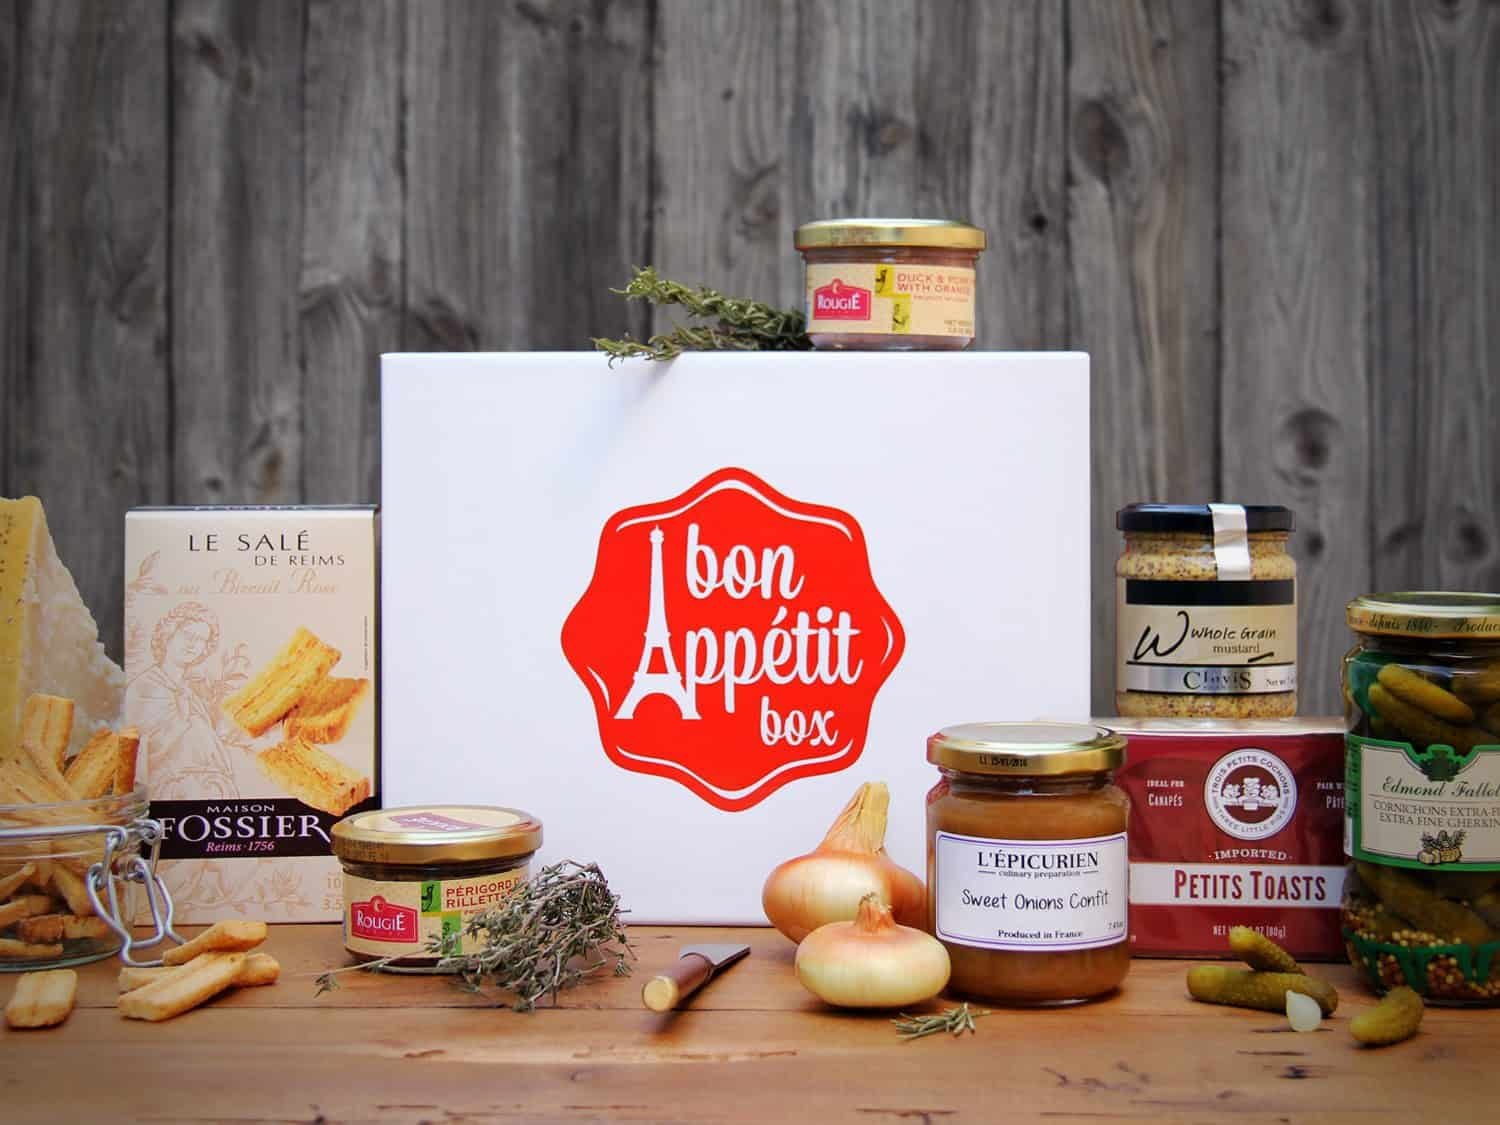 Bon Appétit Box Gourmet Food Subscription Box